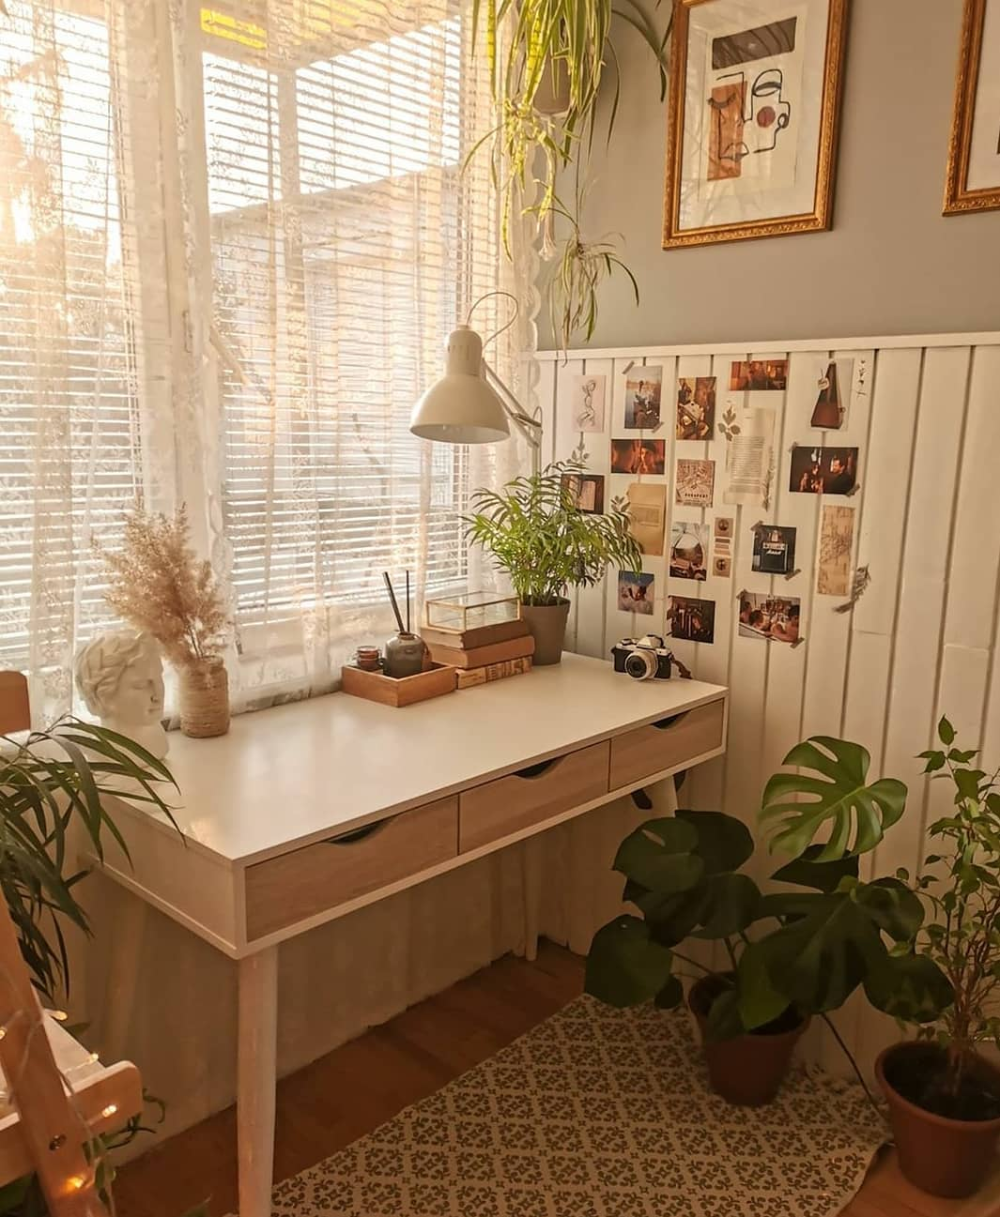 𝐈𝐧𝐭𝐞𝐫𝐢𝐨𝐫𝐲𝐞𝐬𝐩𝐥𝐳 ® (@interioryesplz) • Instagram photos and ... on Room Decor Paredes Aesthetic id=97624